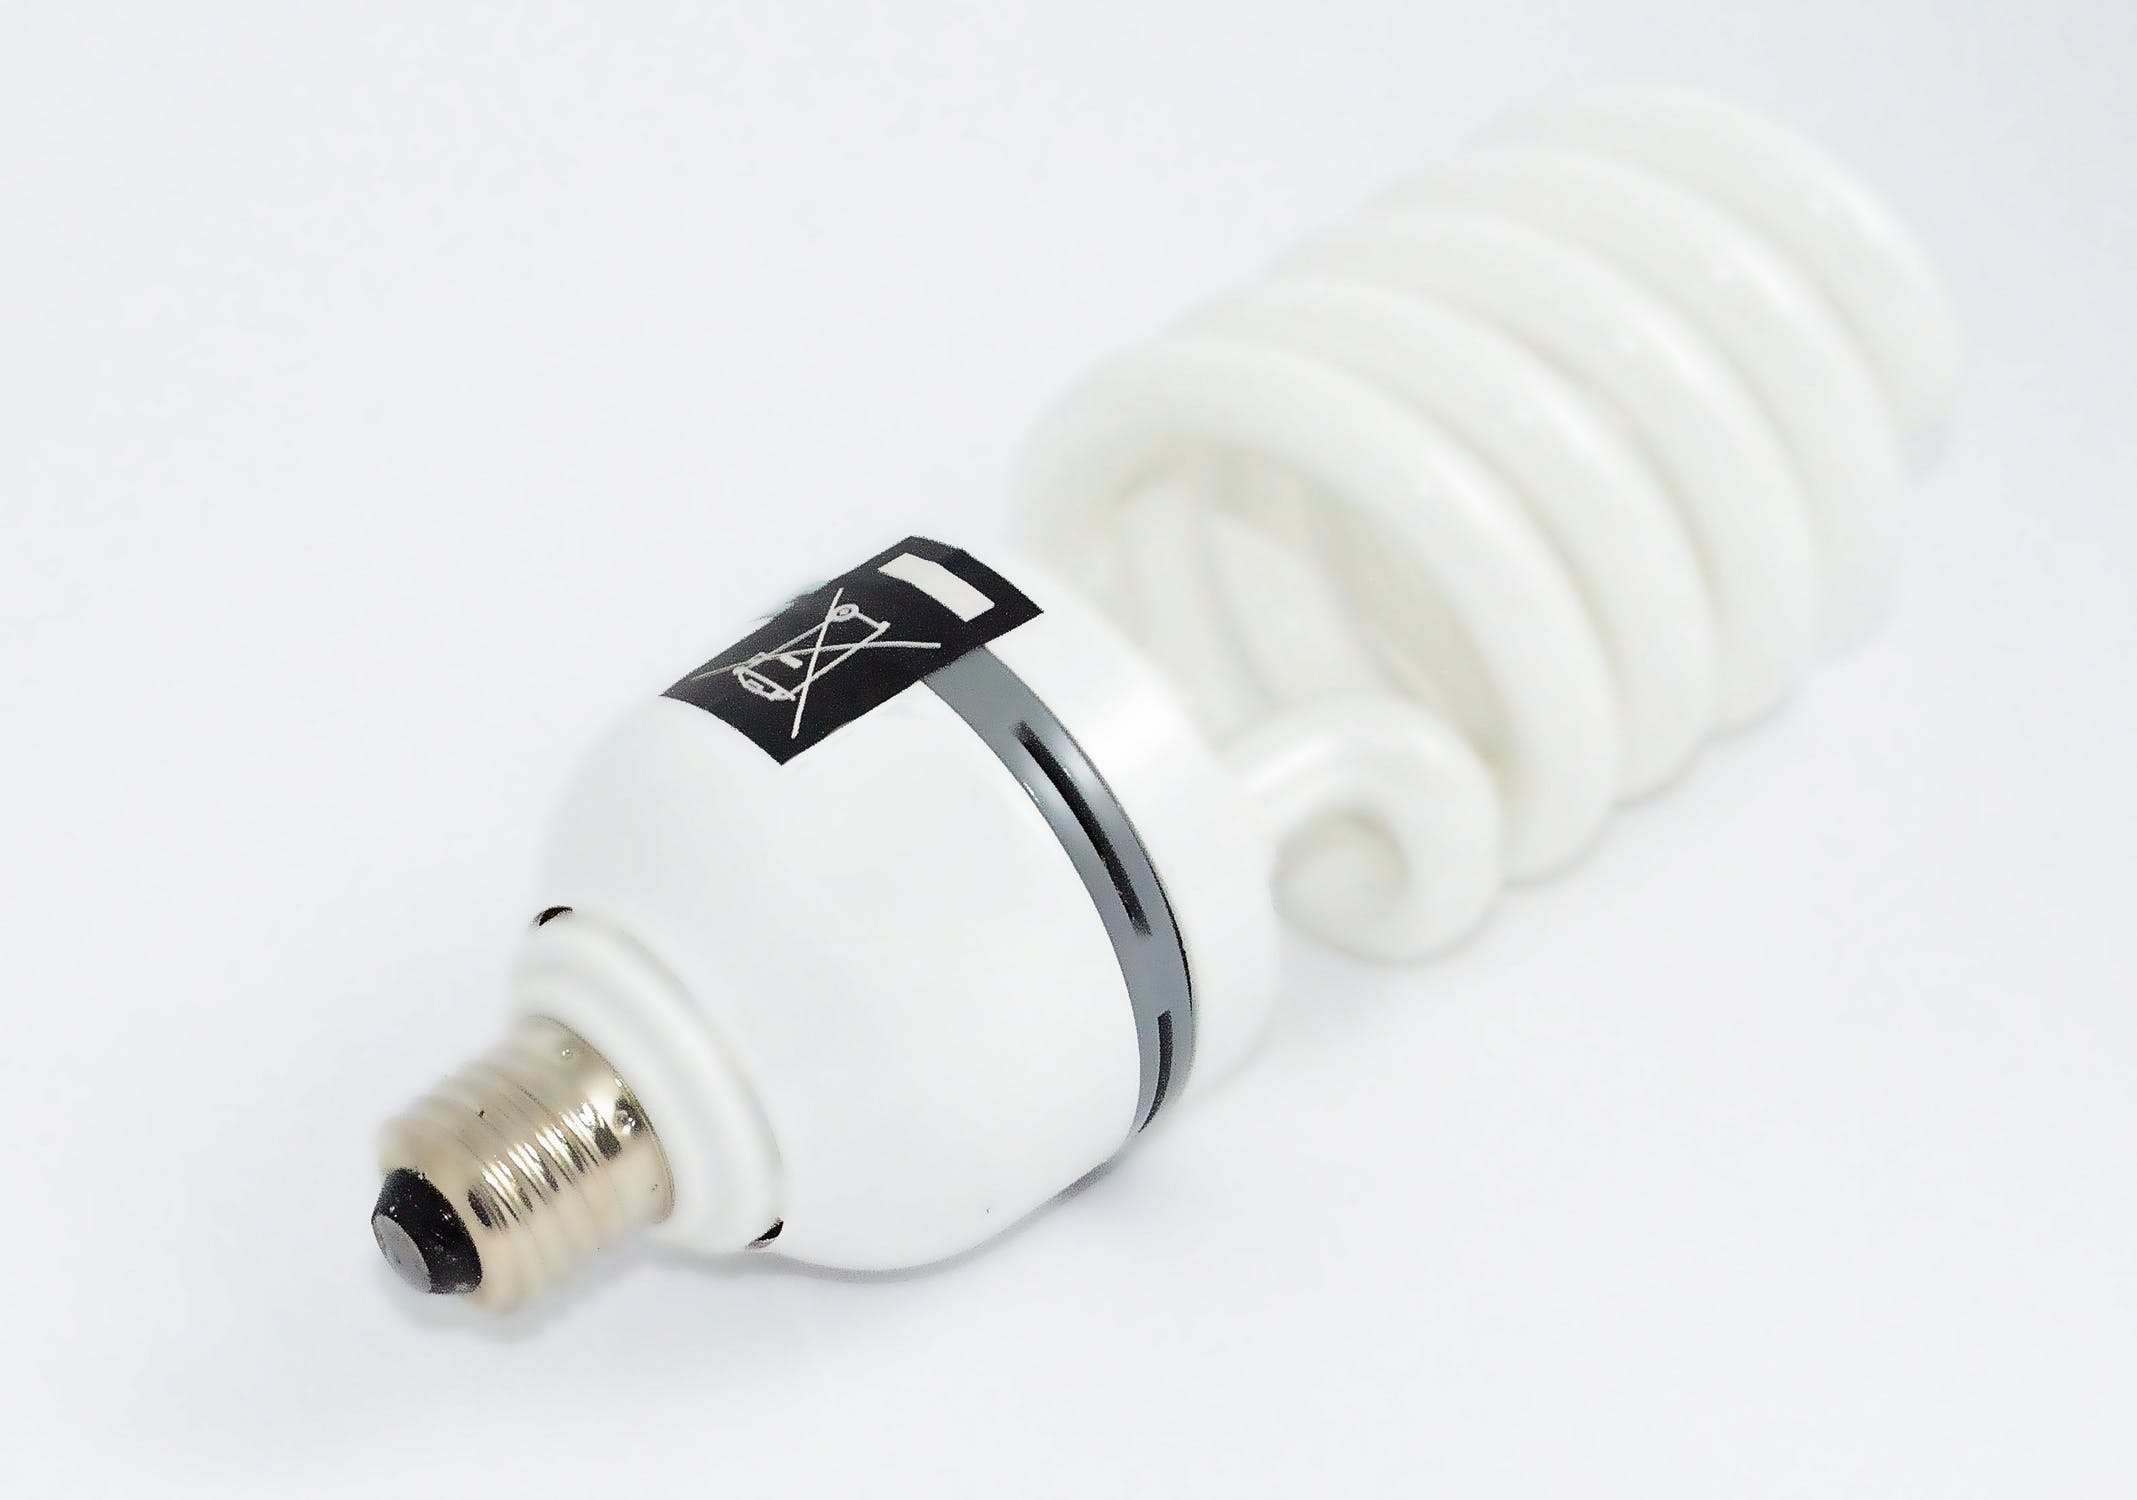 I'm quite convinced these are the light bulbs used in hell.